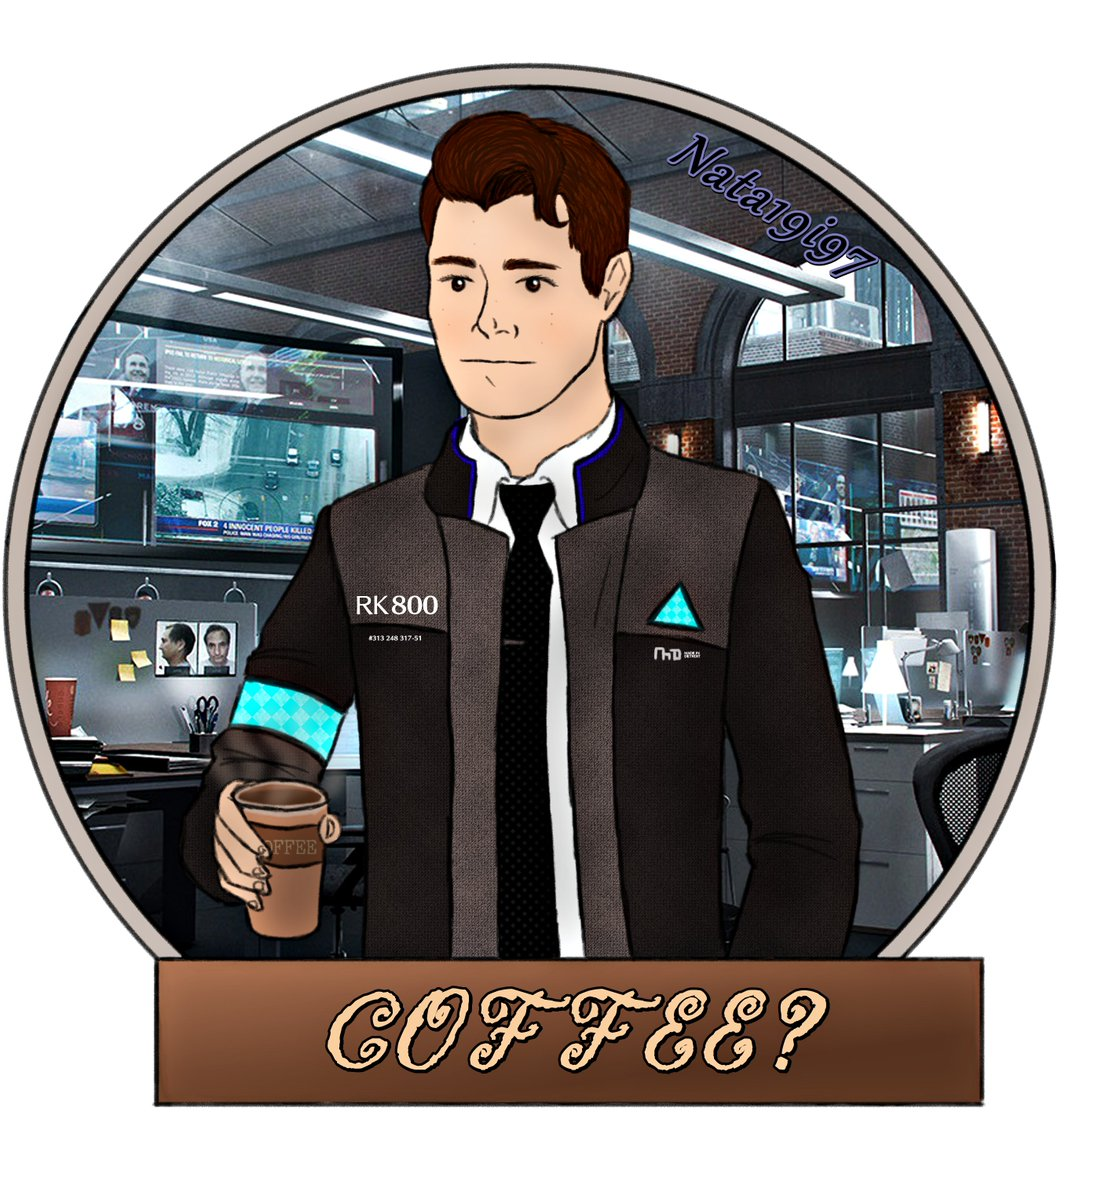 August Art Prompt Day 4: Coffee  I decided to draw something - because I love coffee!  It's not perfect but I still learning #ConnorArmy #DechartGames  @BryanDechart @AmeliaRBlairepic.twitter.com/2HkQV6izES